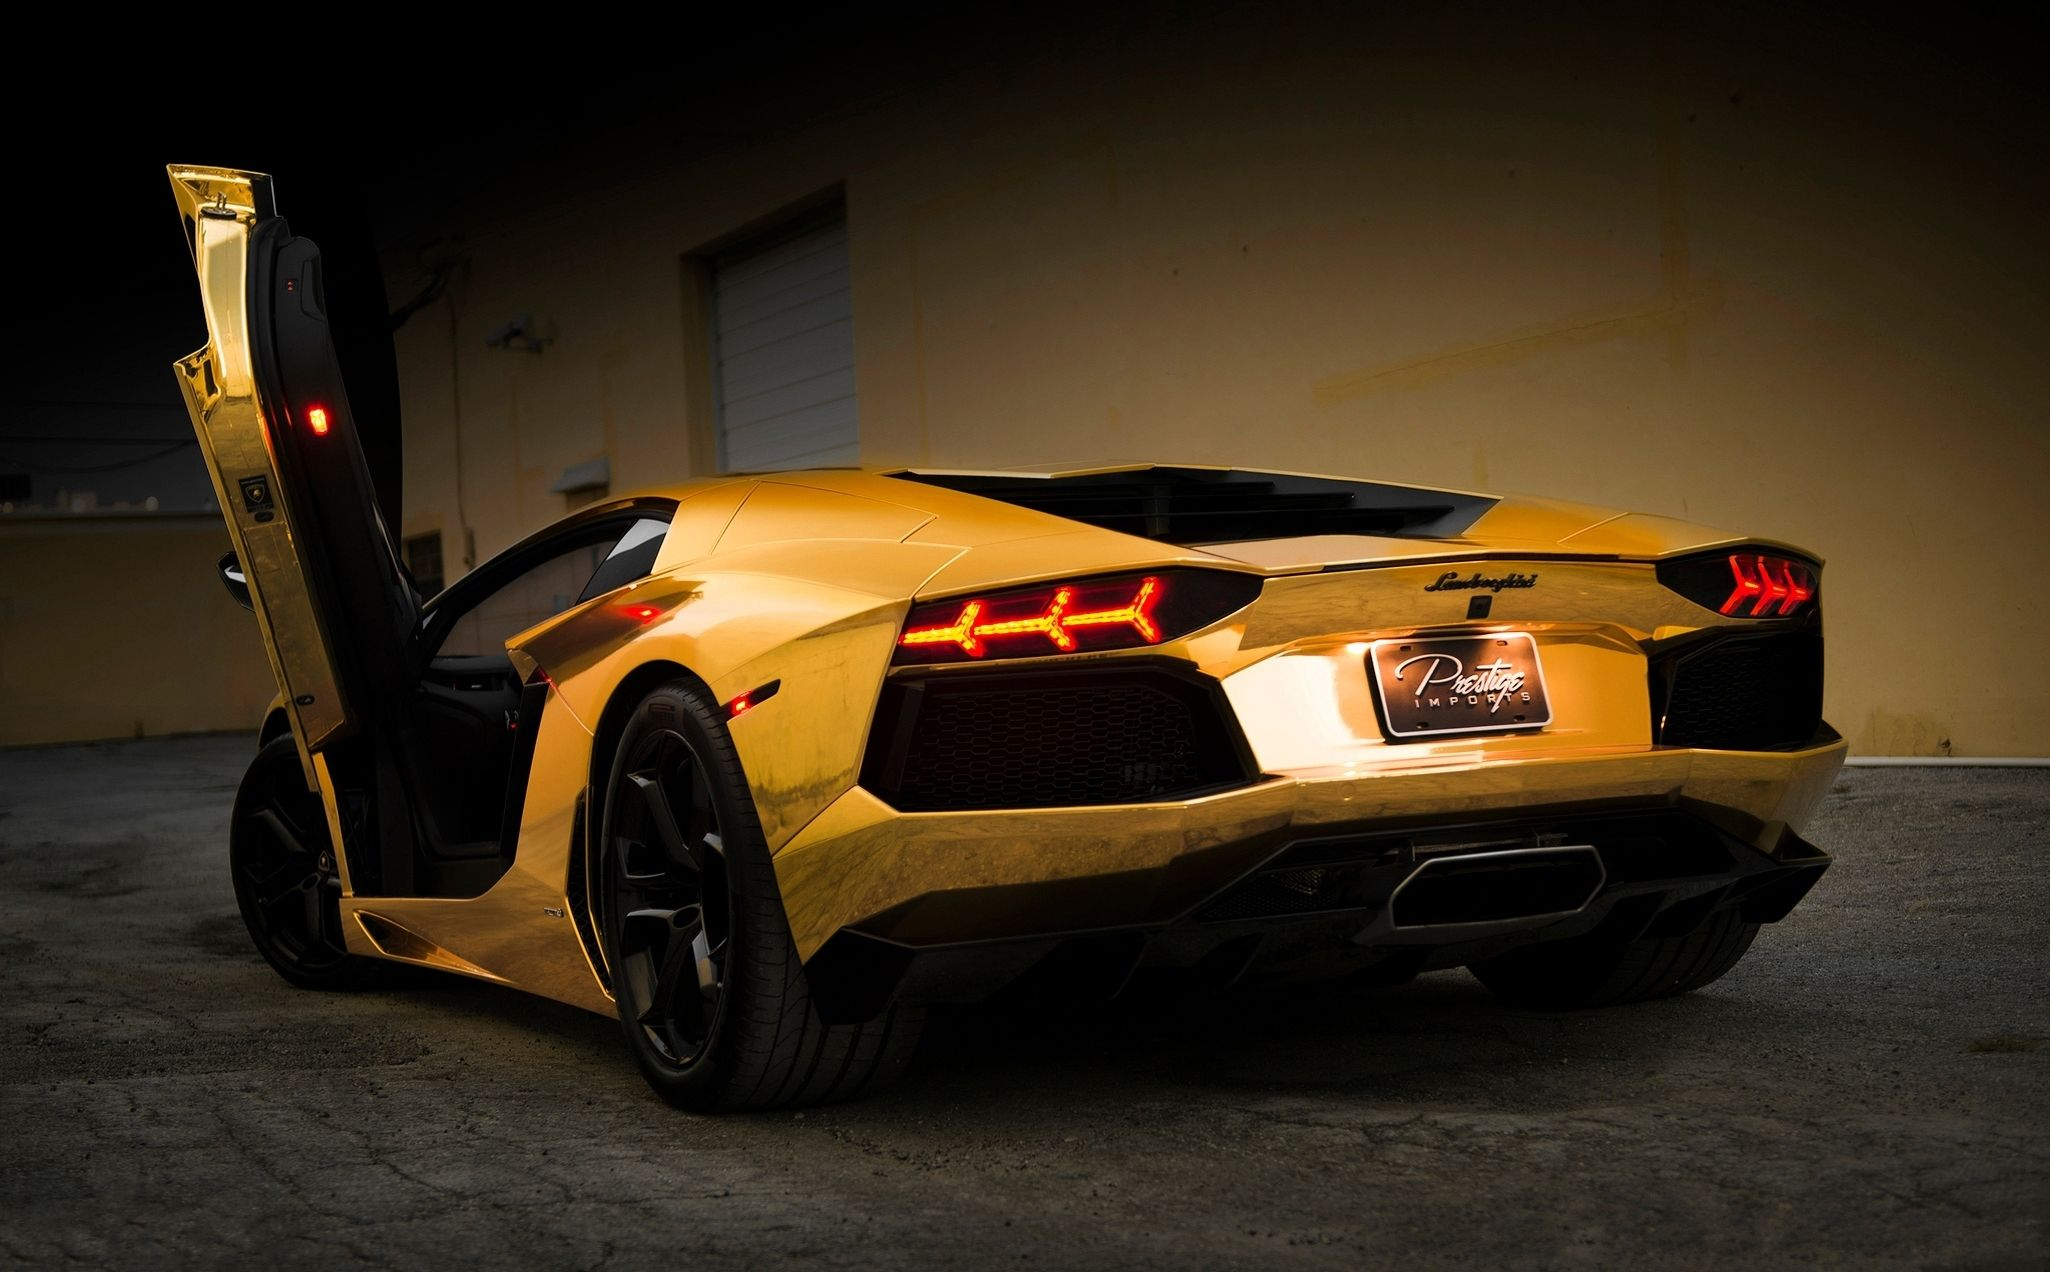 Gold Car Wallpapers: Lamborghini Aventador Car Wallpapers, Http://www